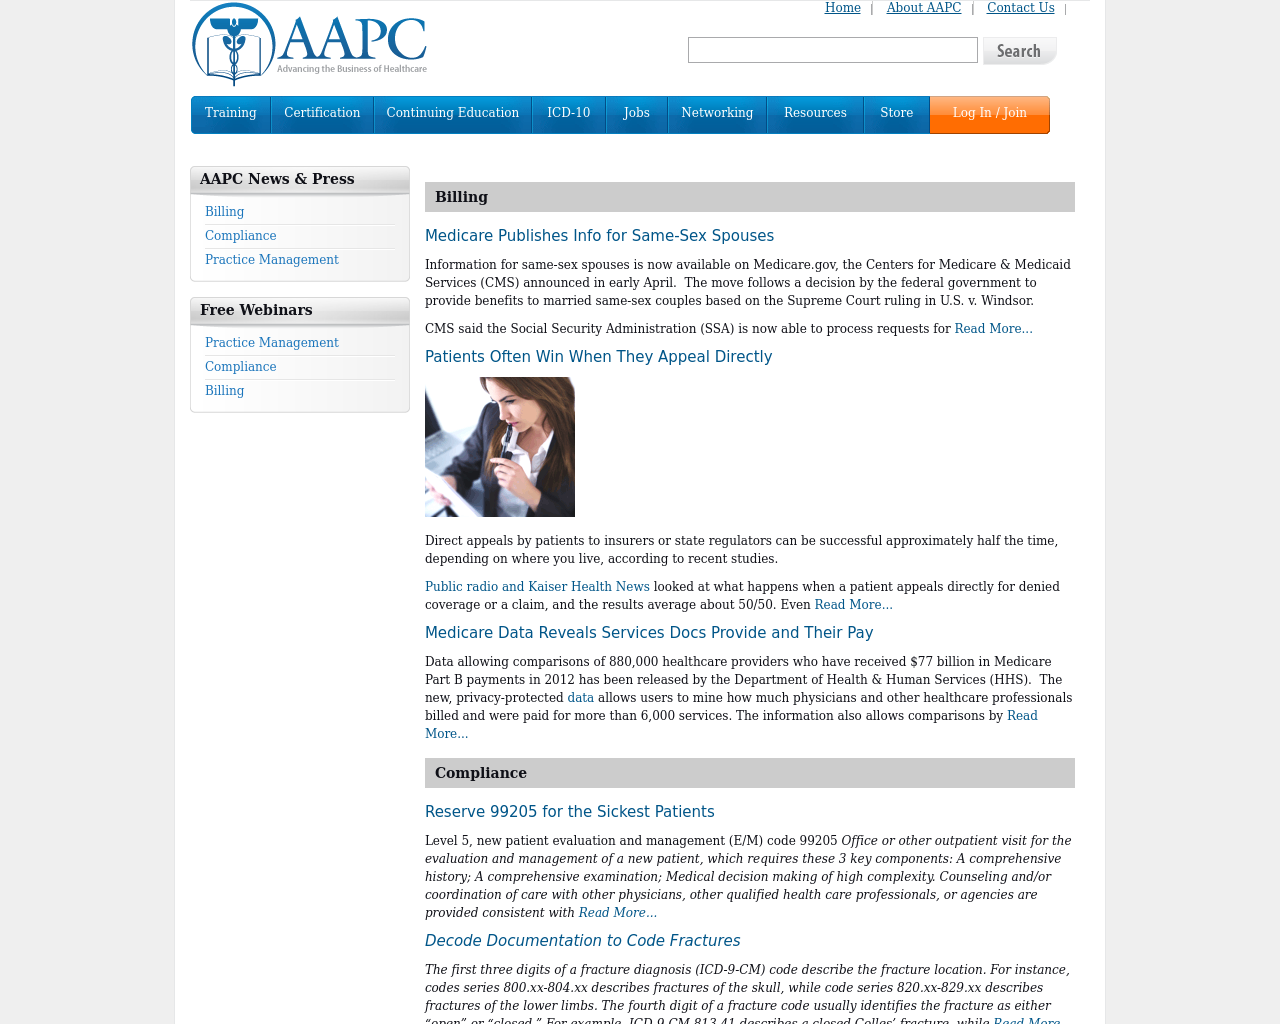 AAPC-Advertising-Reviews-Pricing